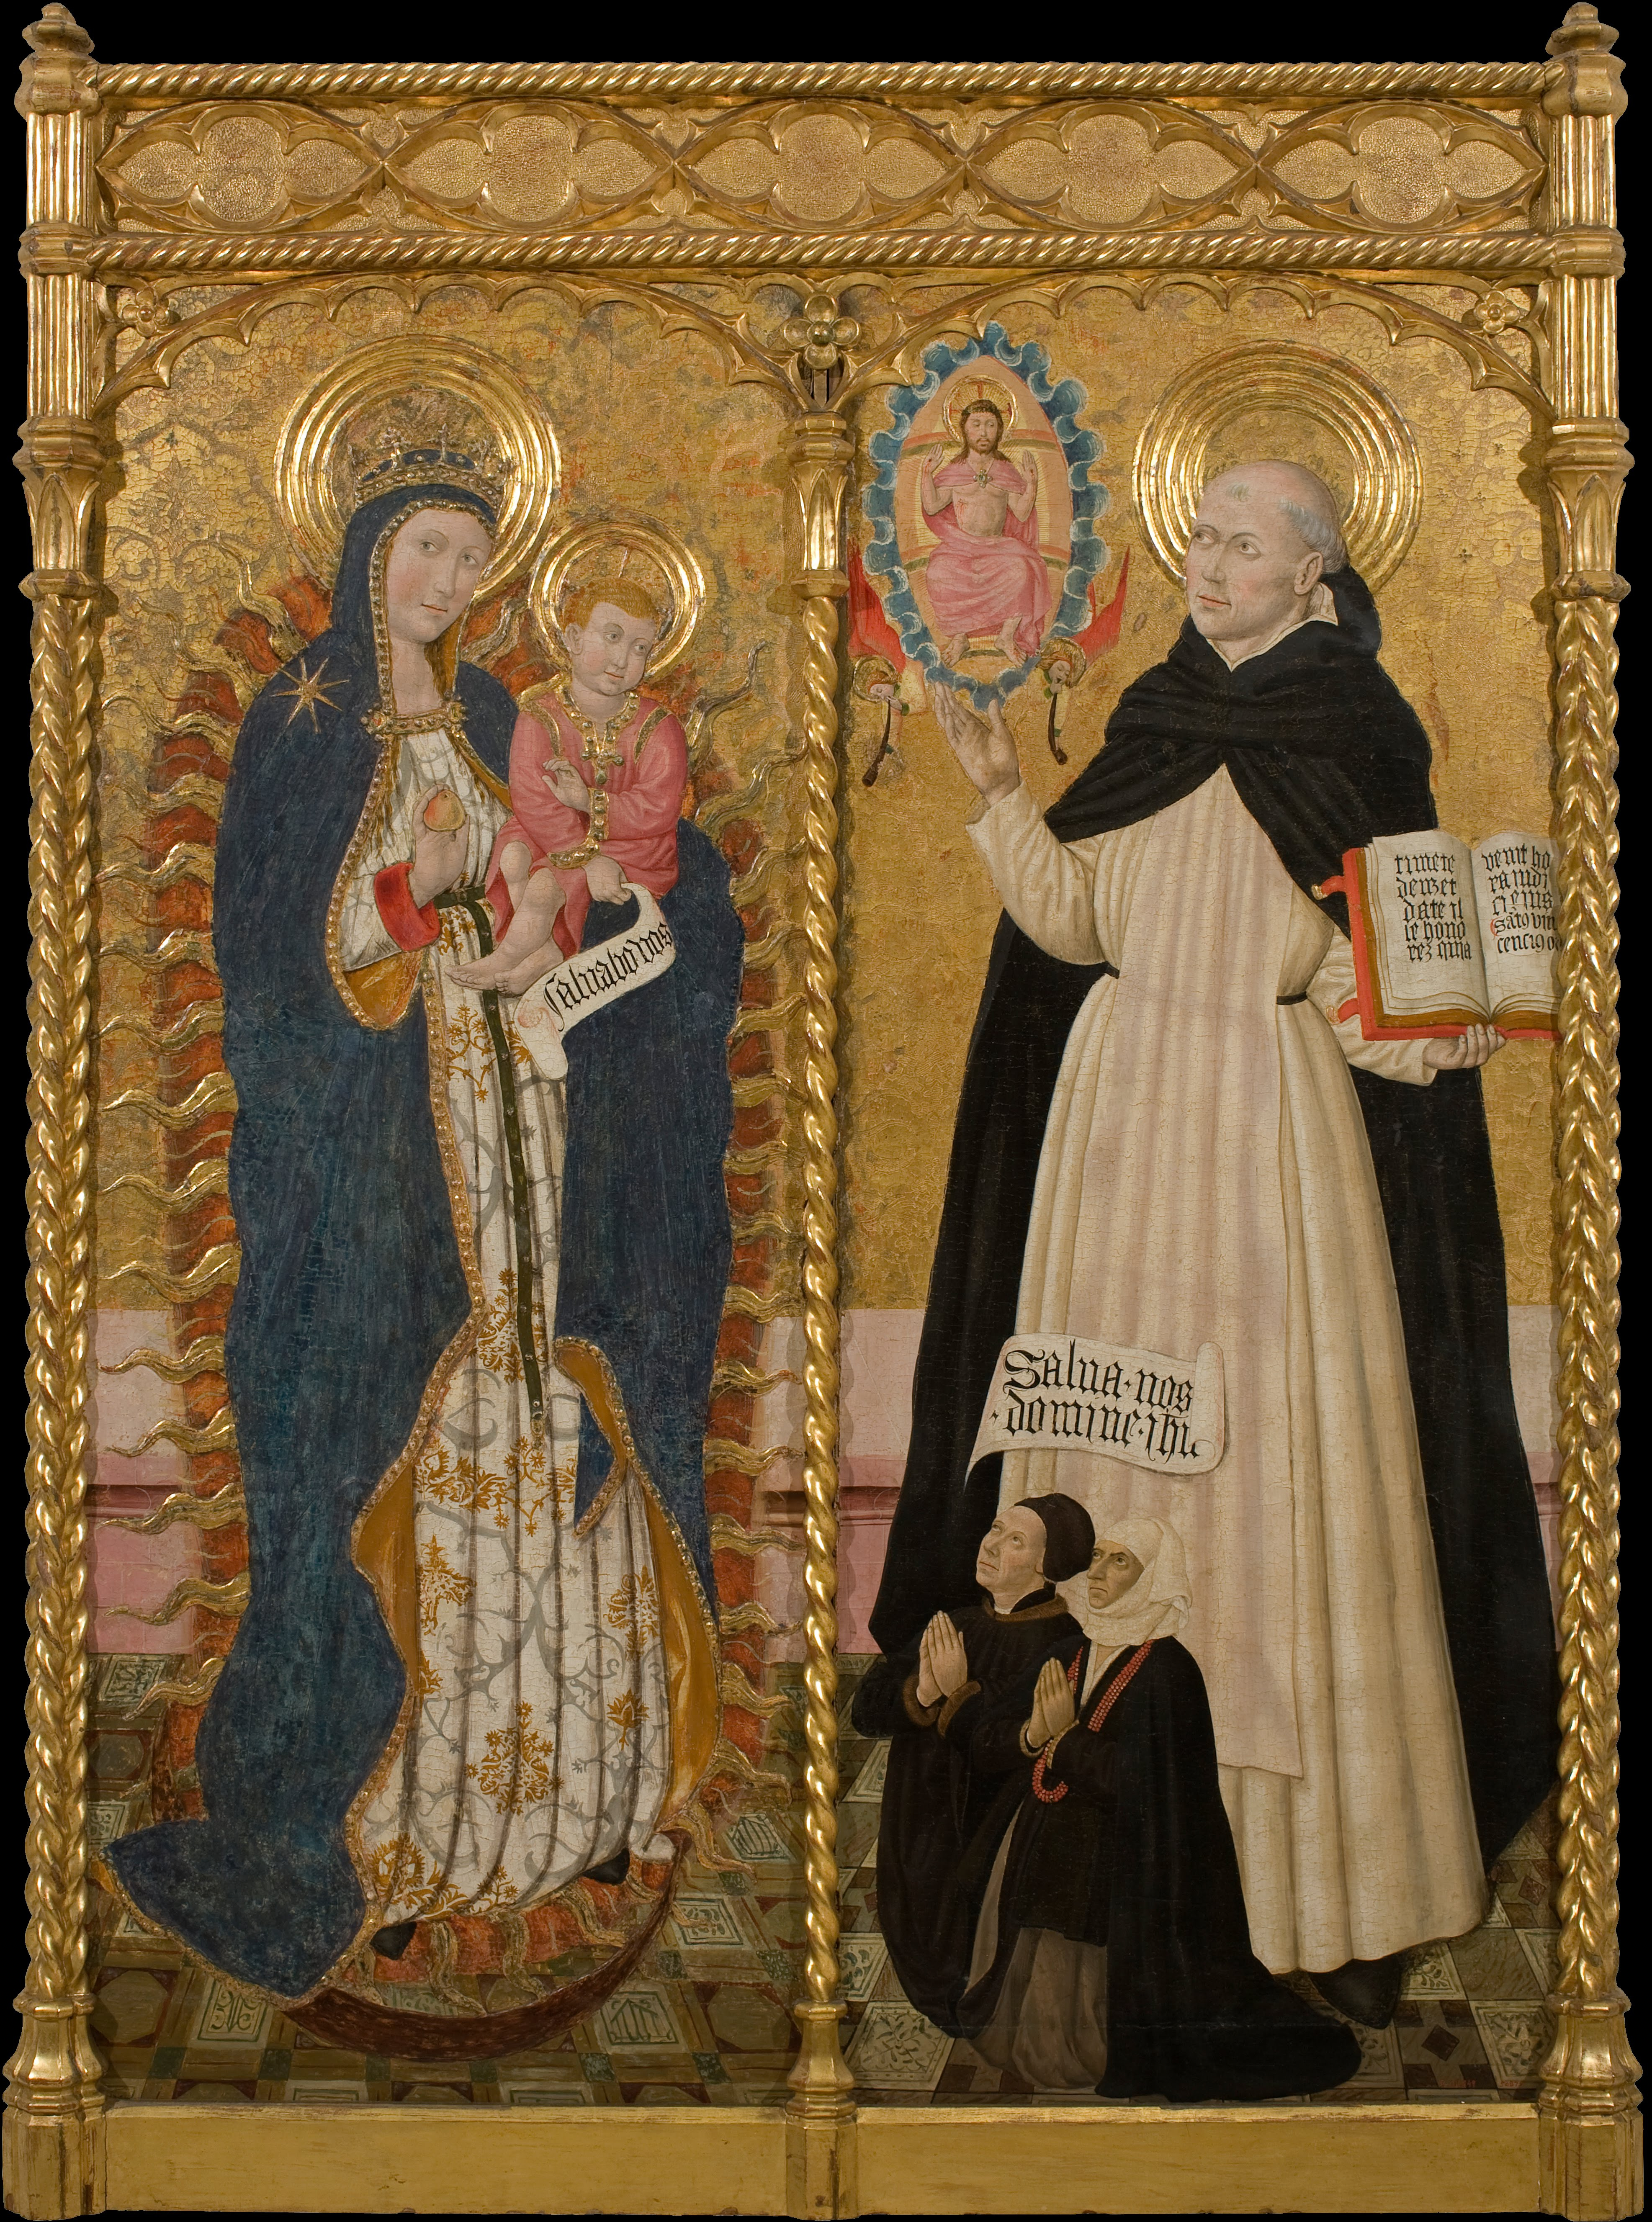 https://upload.wikimedia.org/wikipedia/commons/c/c2/Pedro_Garc%C3%ADa_de_Benabarre_-_Apocalyptic_Virgin_and_Saint_Vincent_Ferrer_with_two_Donors_-_Google_Art_Project.jpg